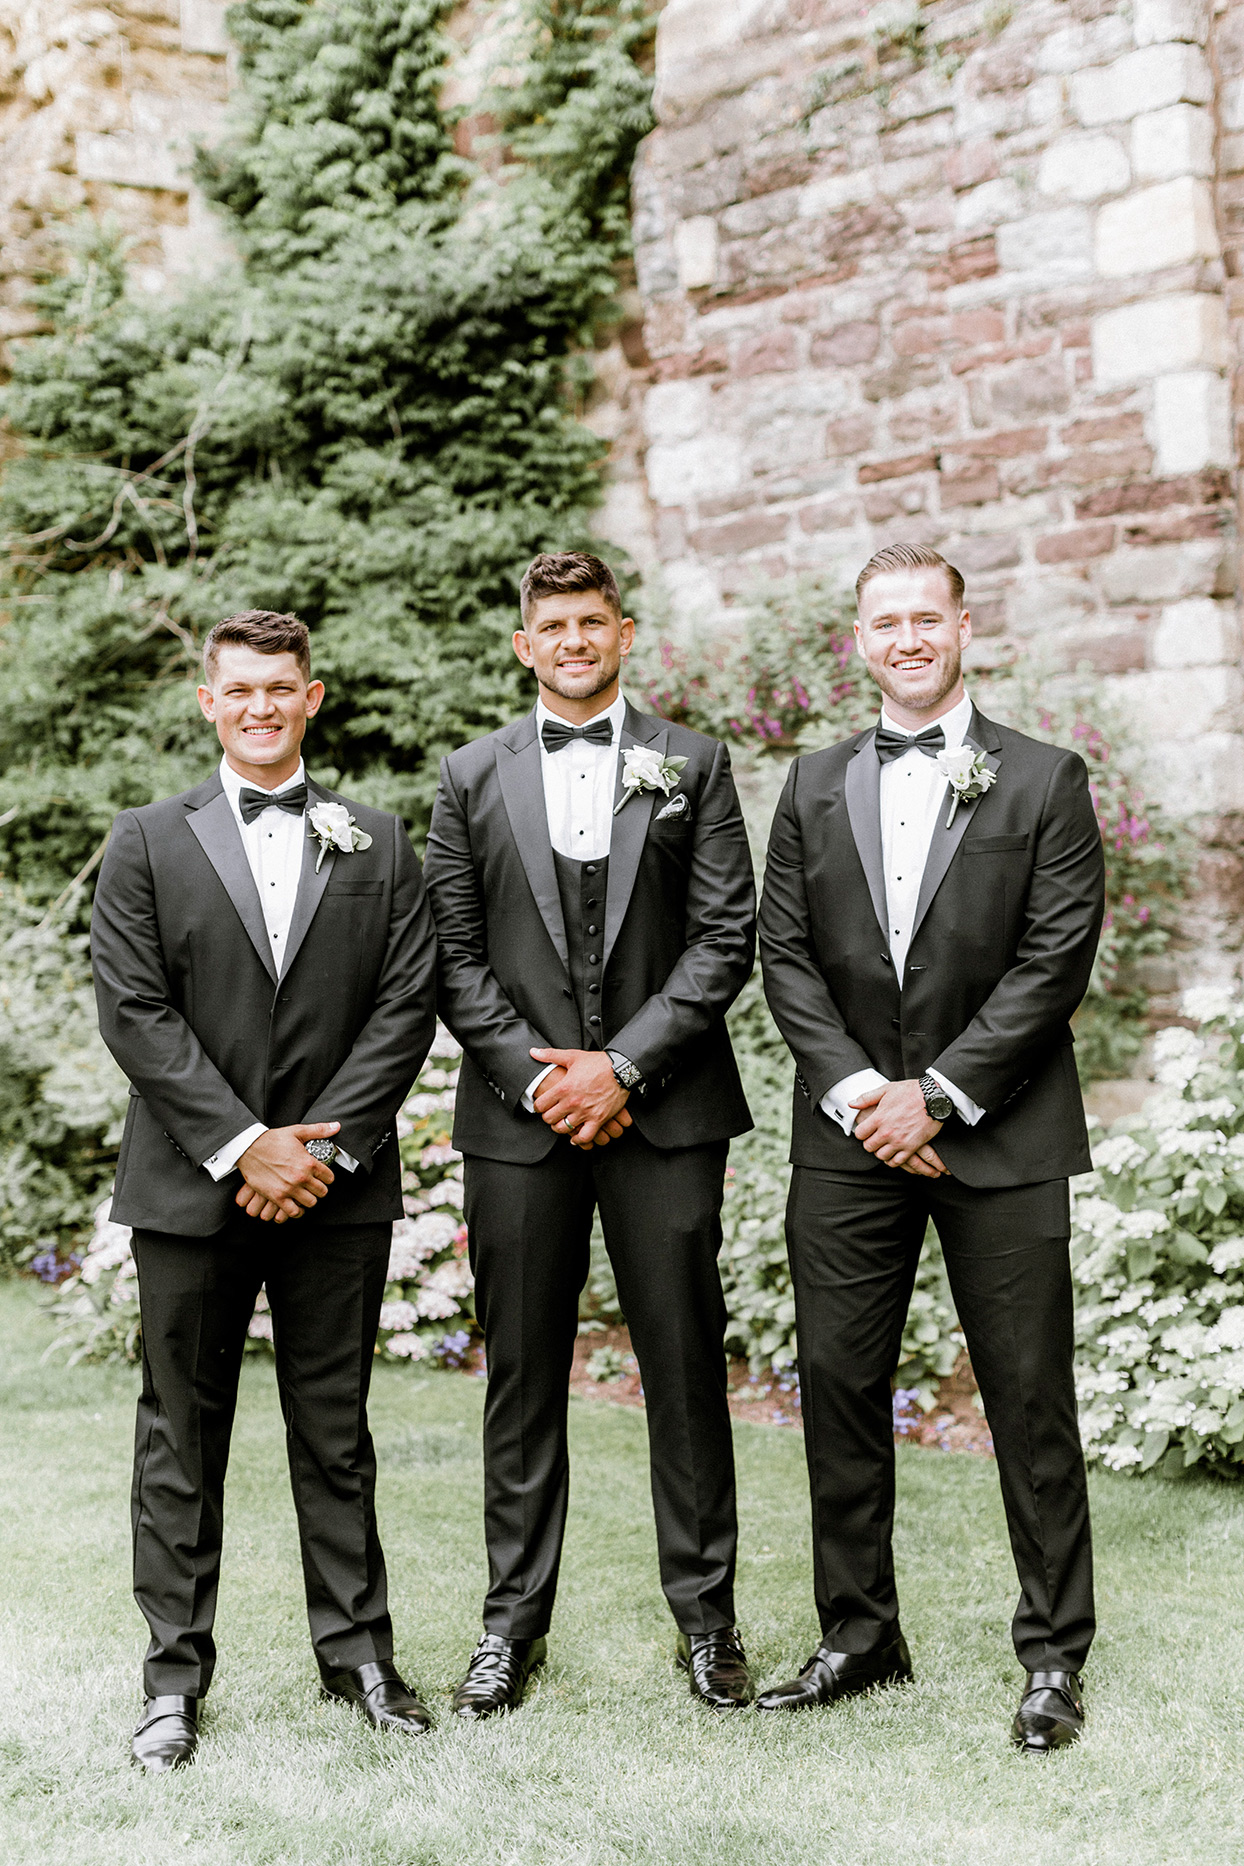 groom and groomsmen standing together in black suits on lawn